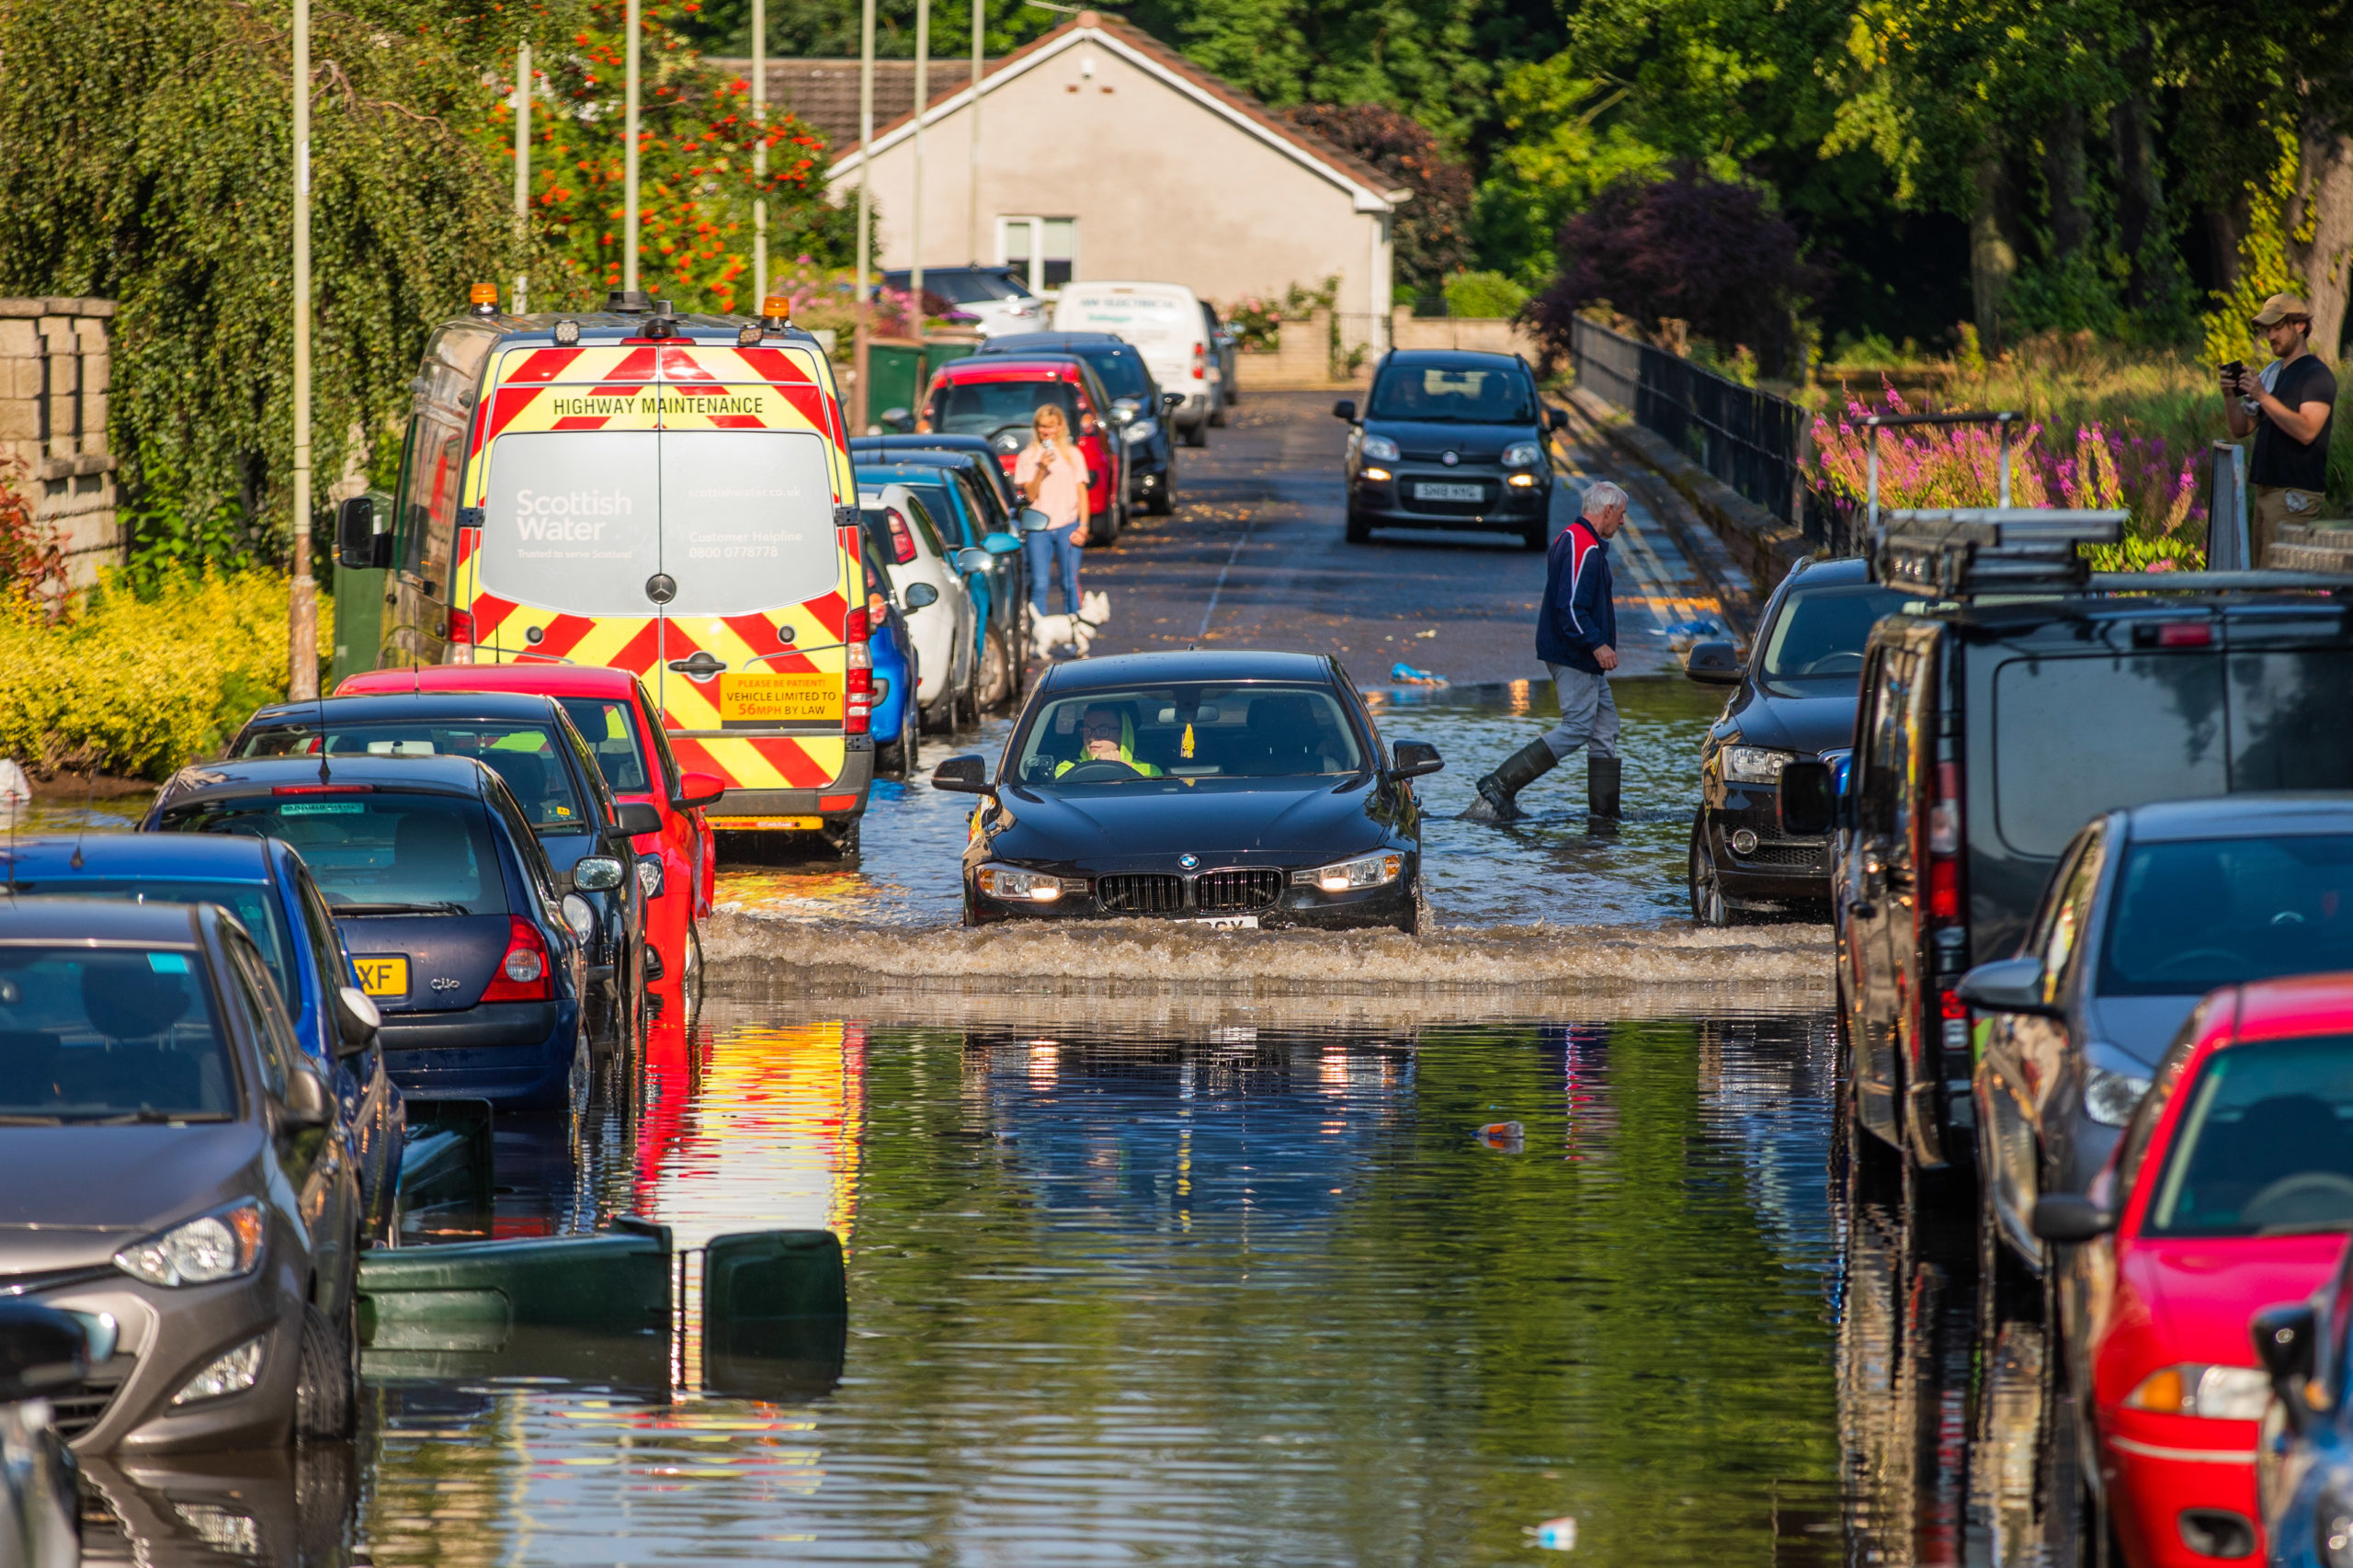 Areas of Perth suffered high levels of flooding. Picture: Steve MacDougall.